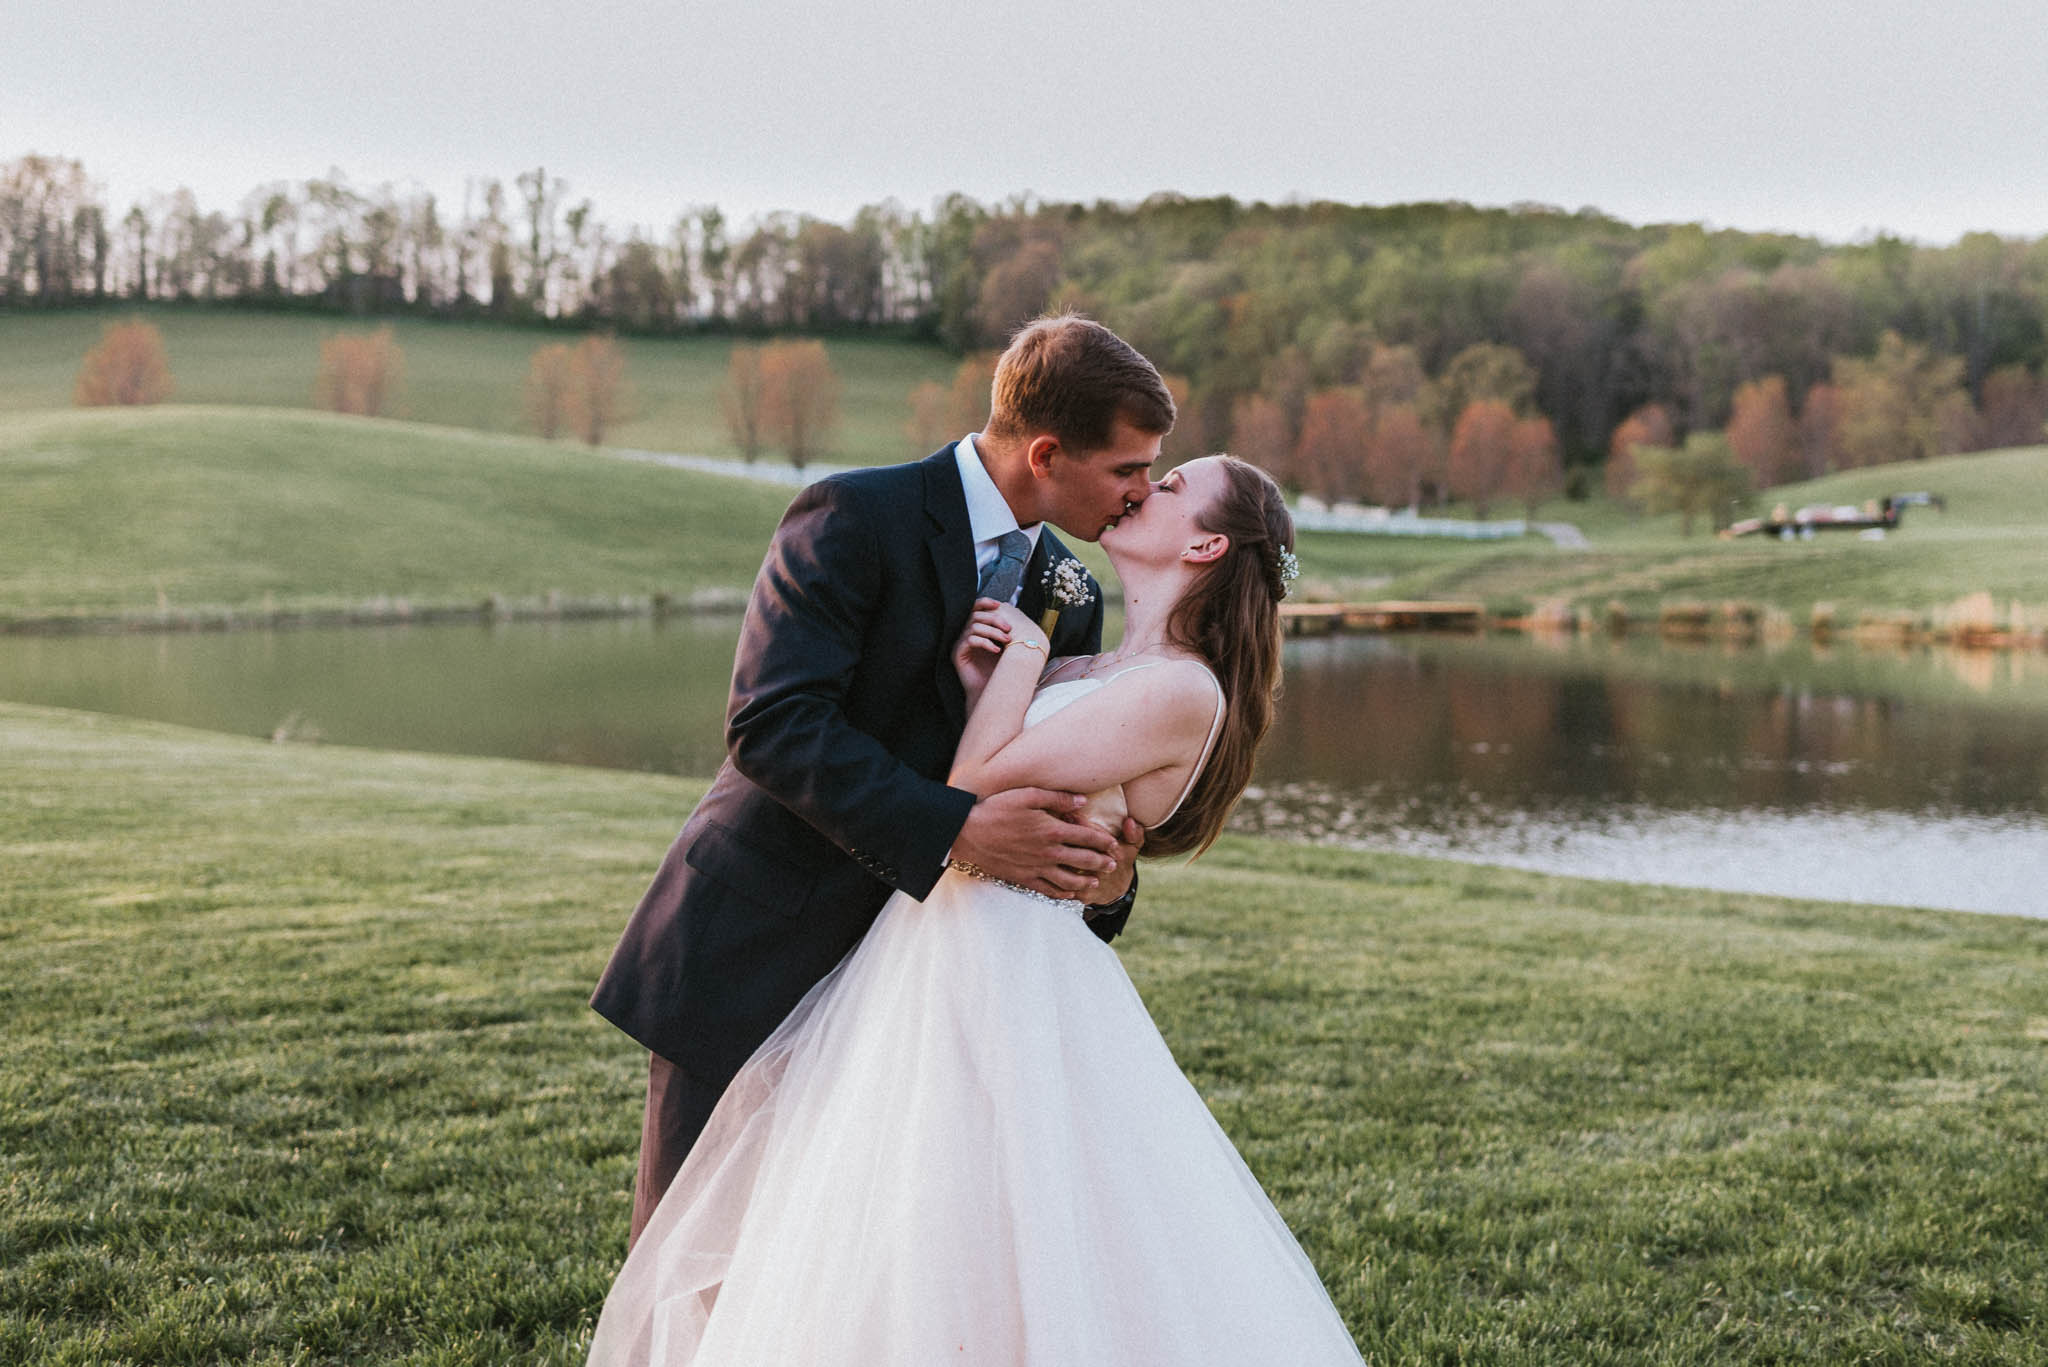 Grace Meadows Farm Wedding, Jonesborough, TN, Northeast Tennessee Wedding Photographer, East Tennessee Wedding Photographer, Knoxville, TN Wedding Photographer